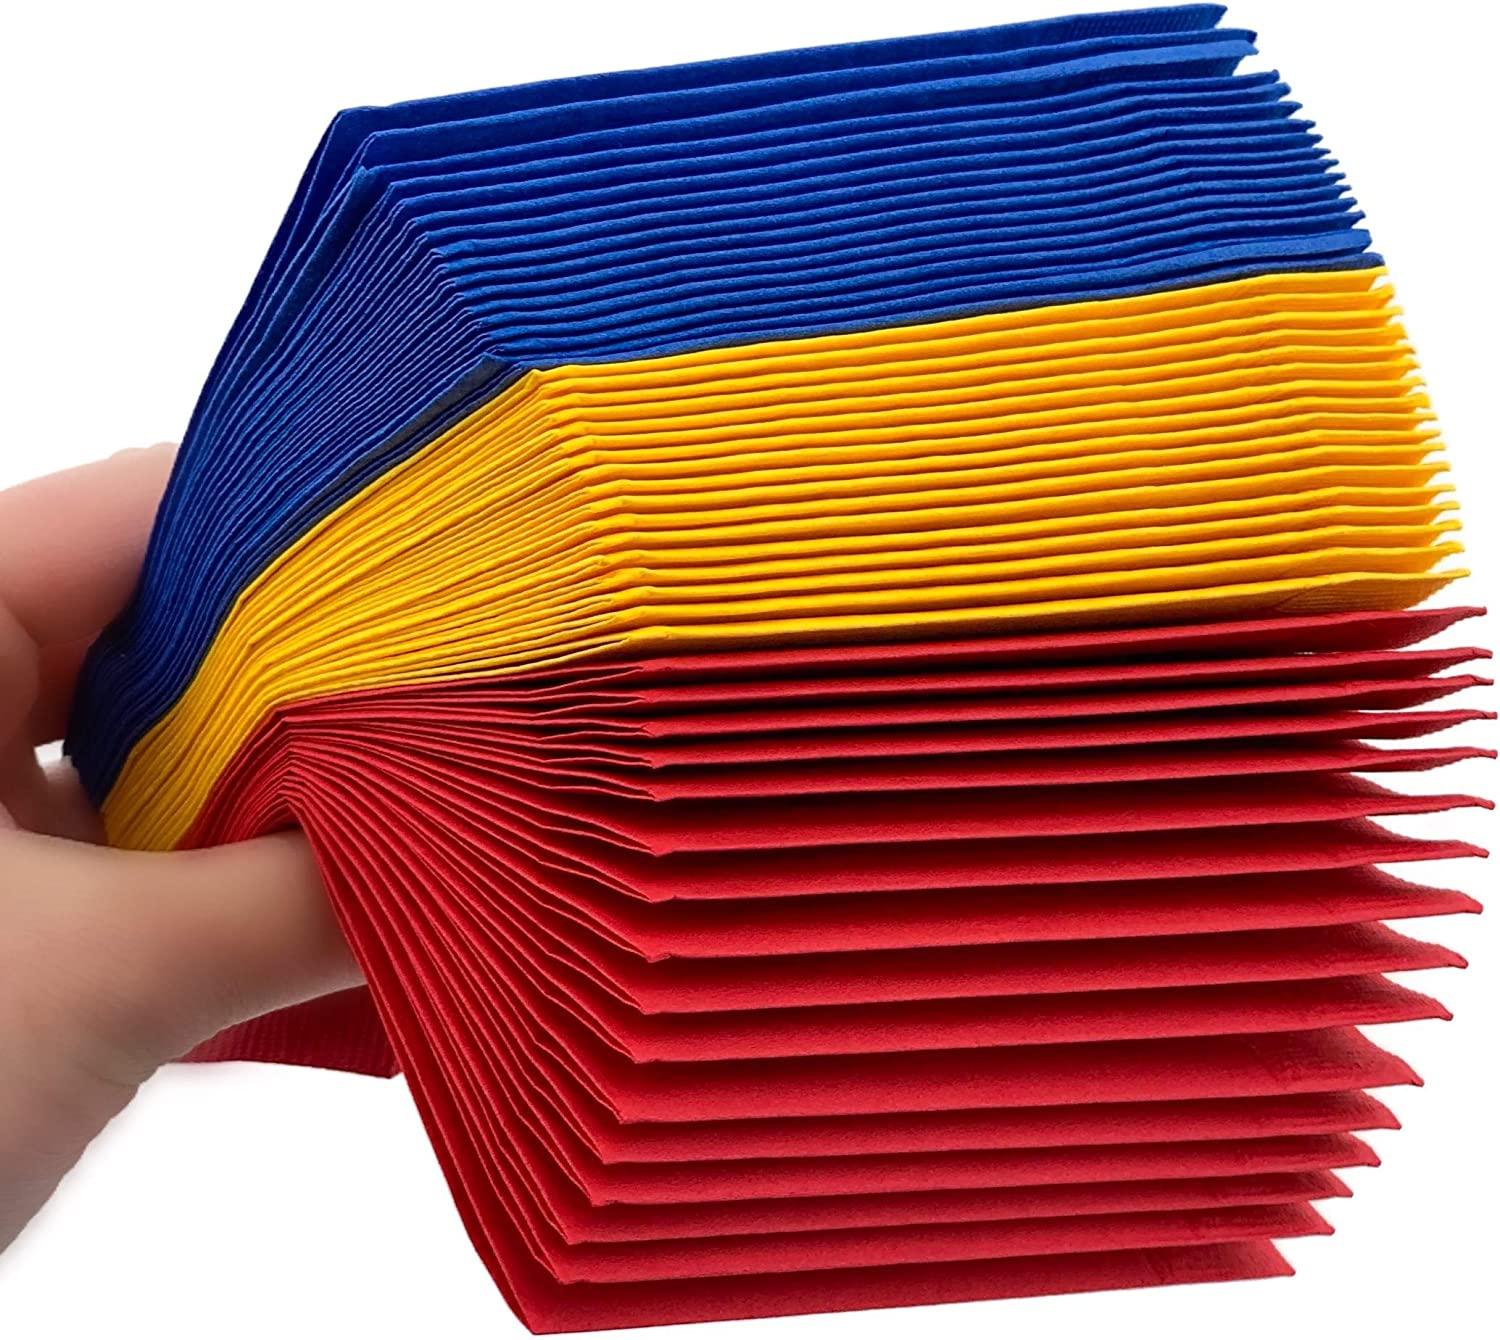 Superhero Napkins - 50 Ct Beverage Red Yellow Blue Color Paint Party